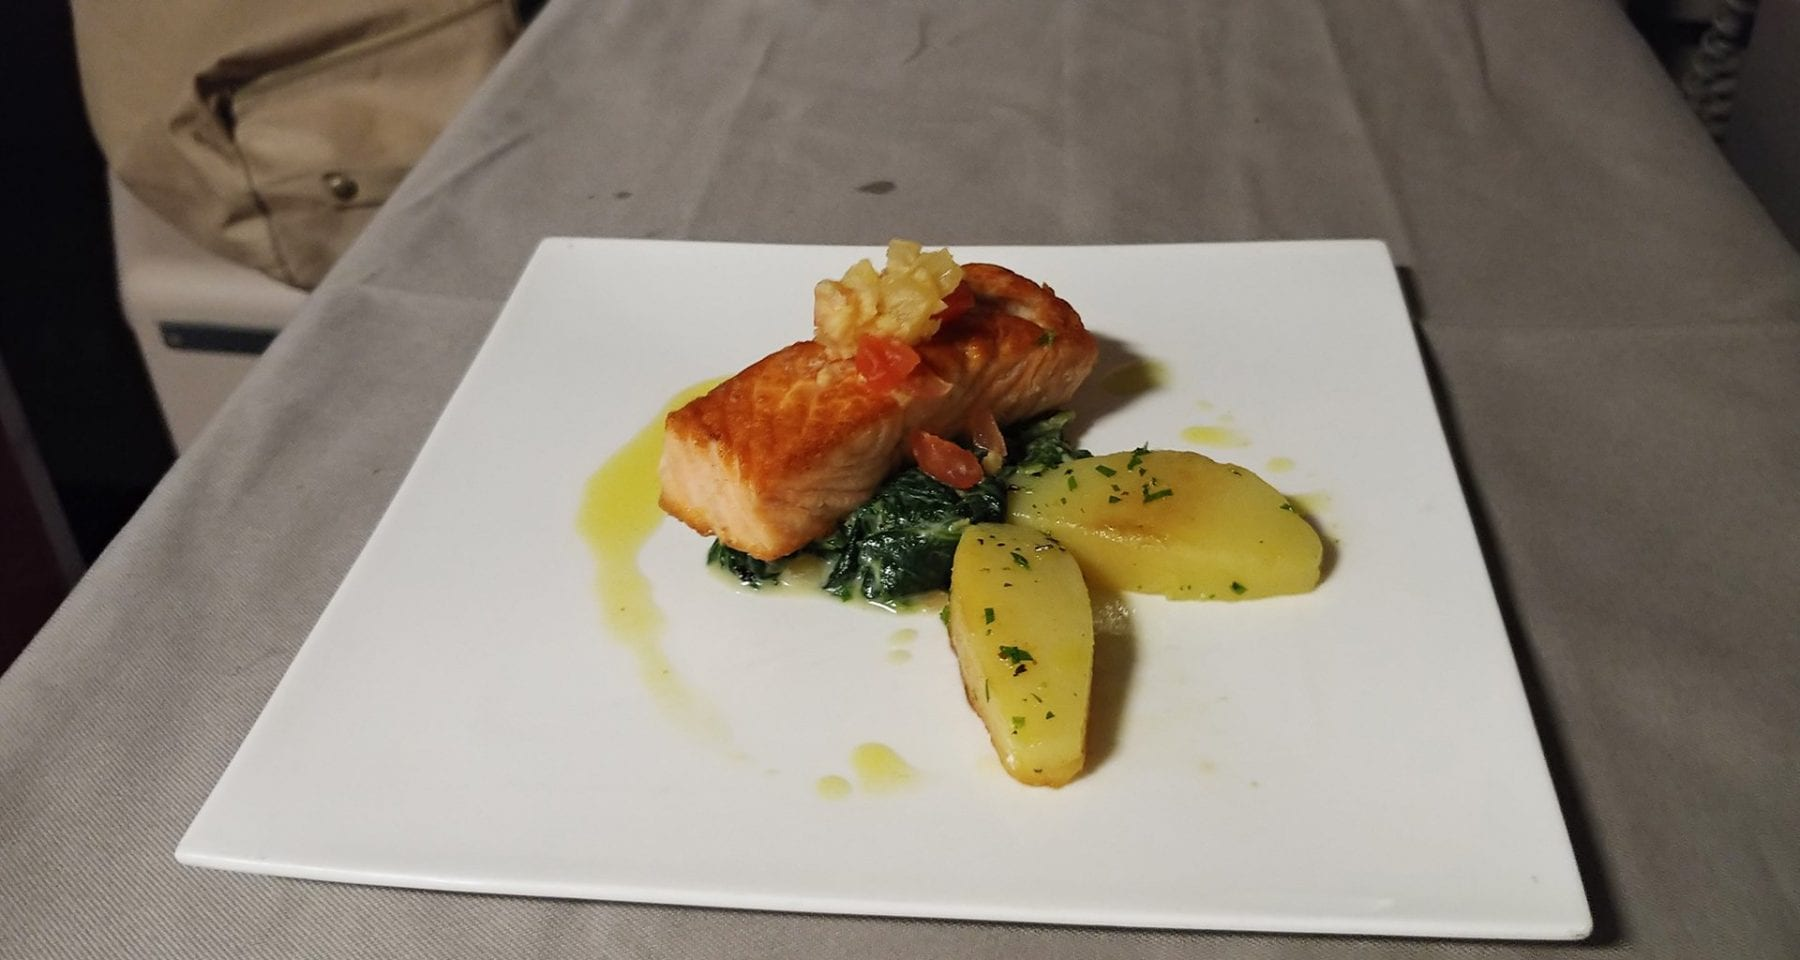 Turkish airlines business class salmon meal